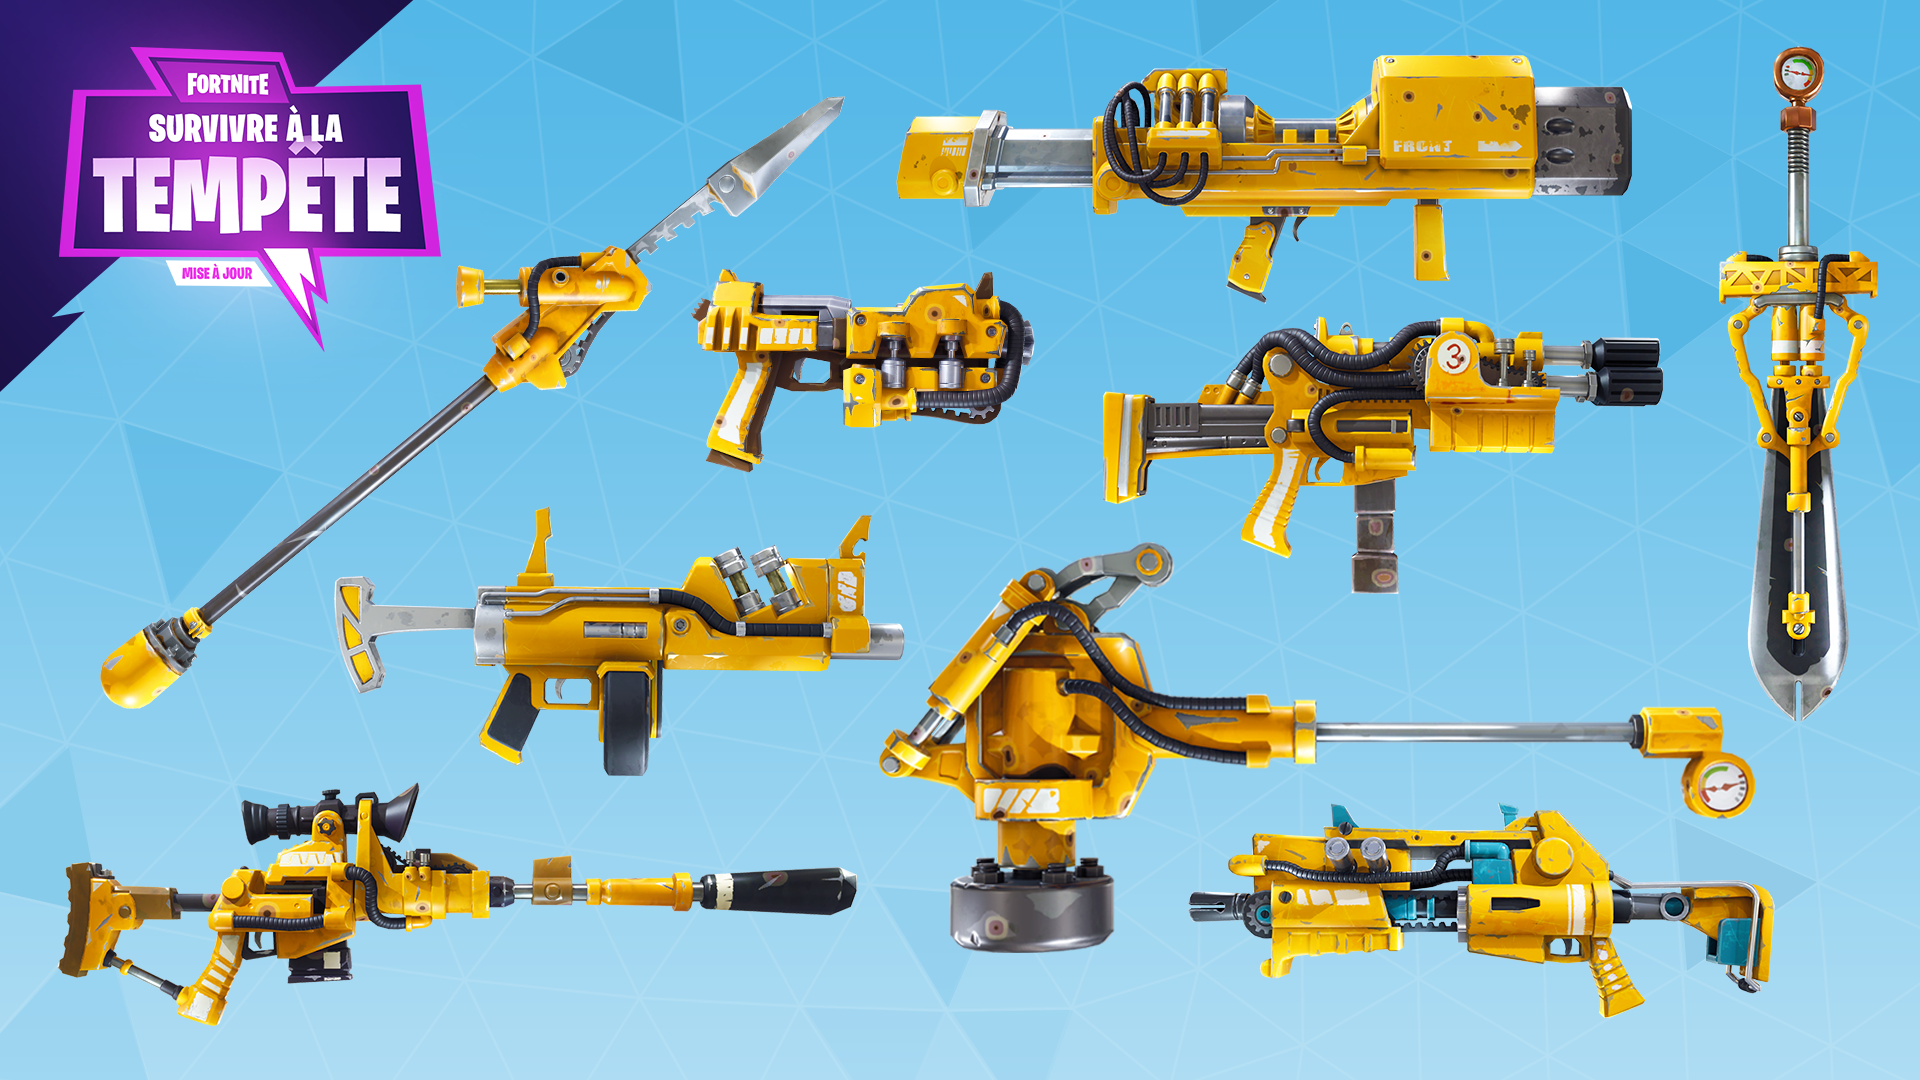 Fortnite%2Fblog%2Fsurvive-the-storm---release-notes%2FFR_Hydraulic-Weapons-1920x1080-0bb3fc5157a1777e6bca4c3afe7ff035517993bd